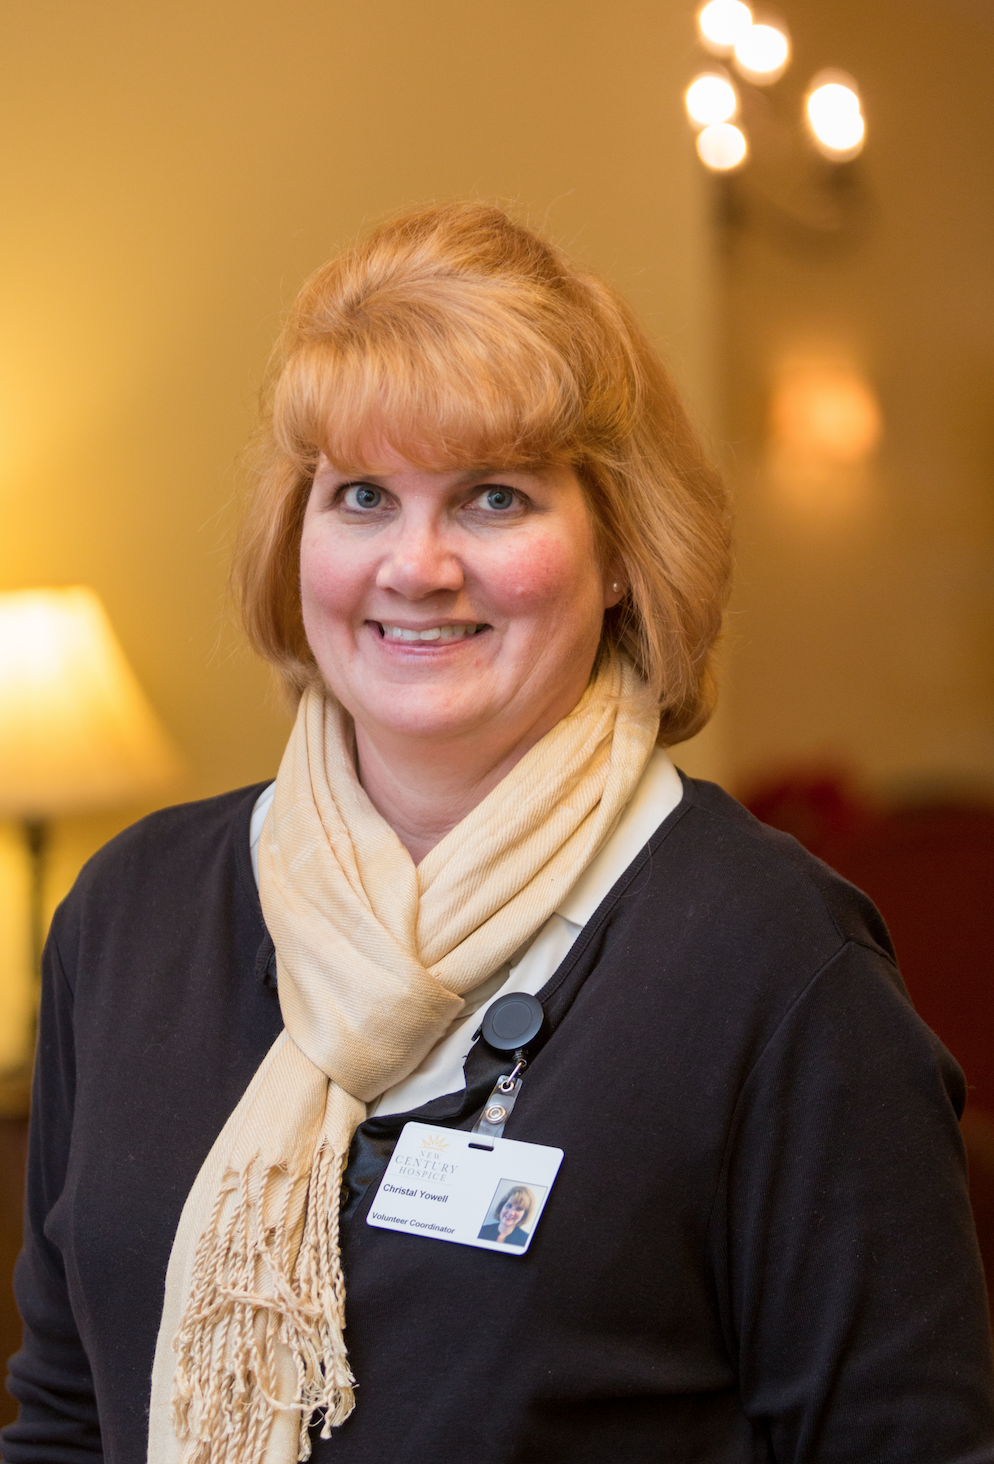 Christal Yowell from New Century Hospice